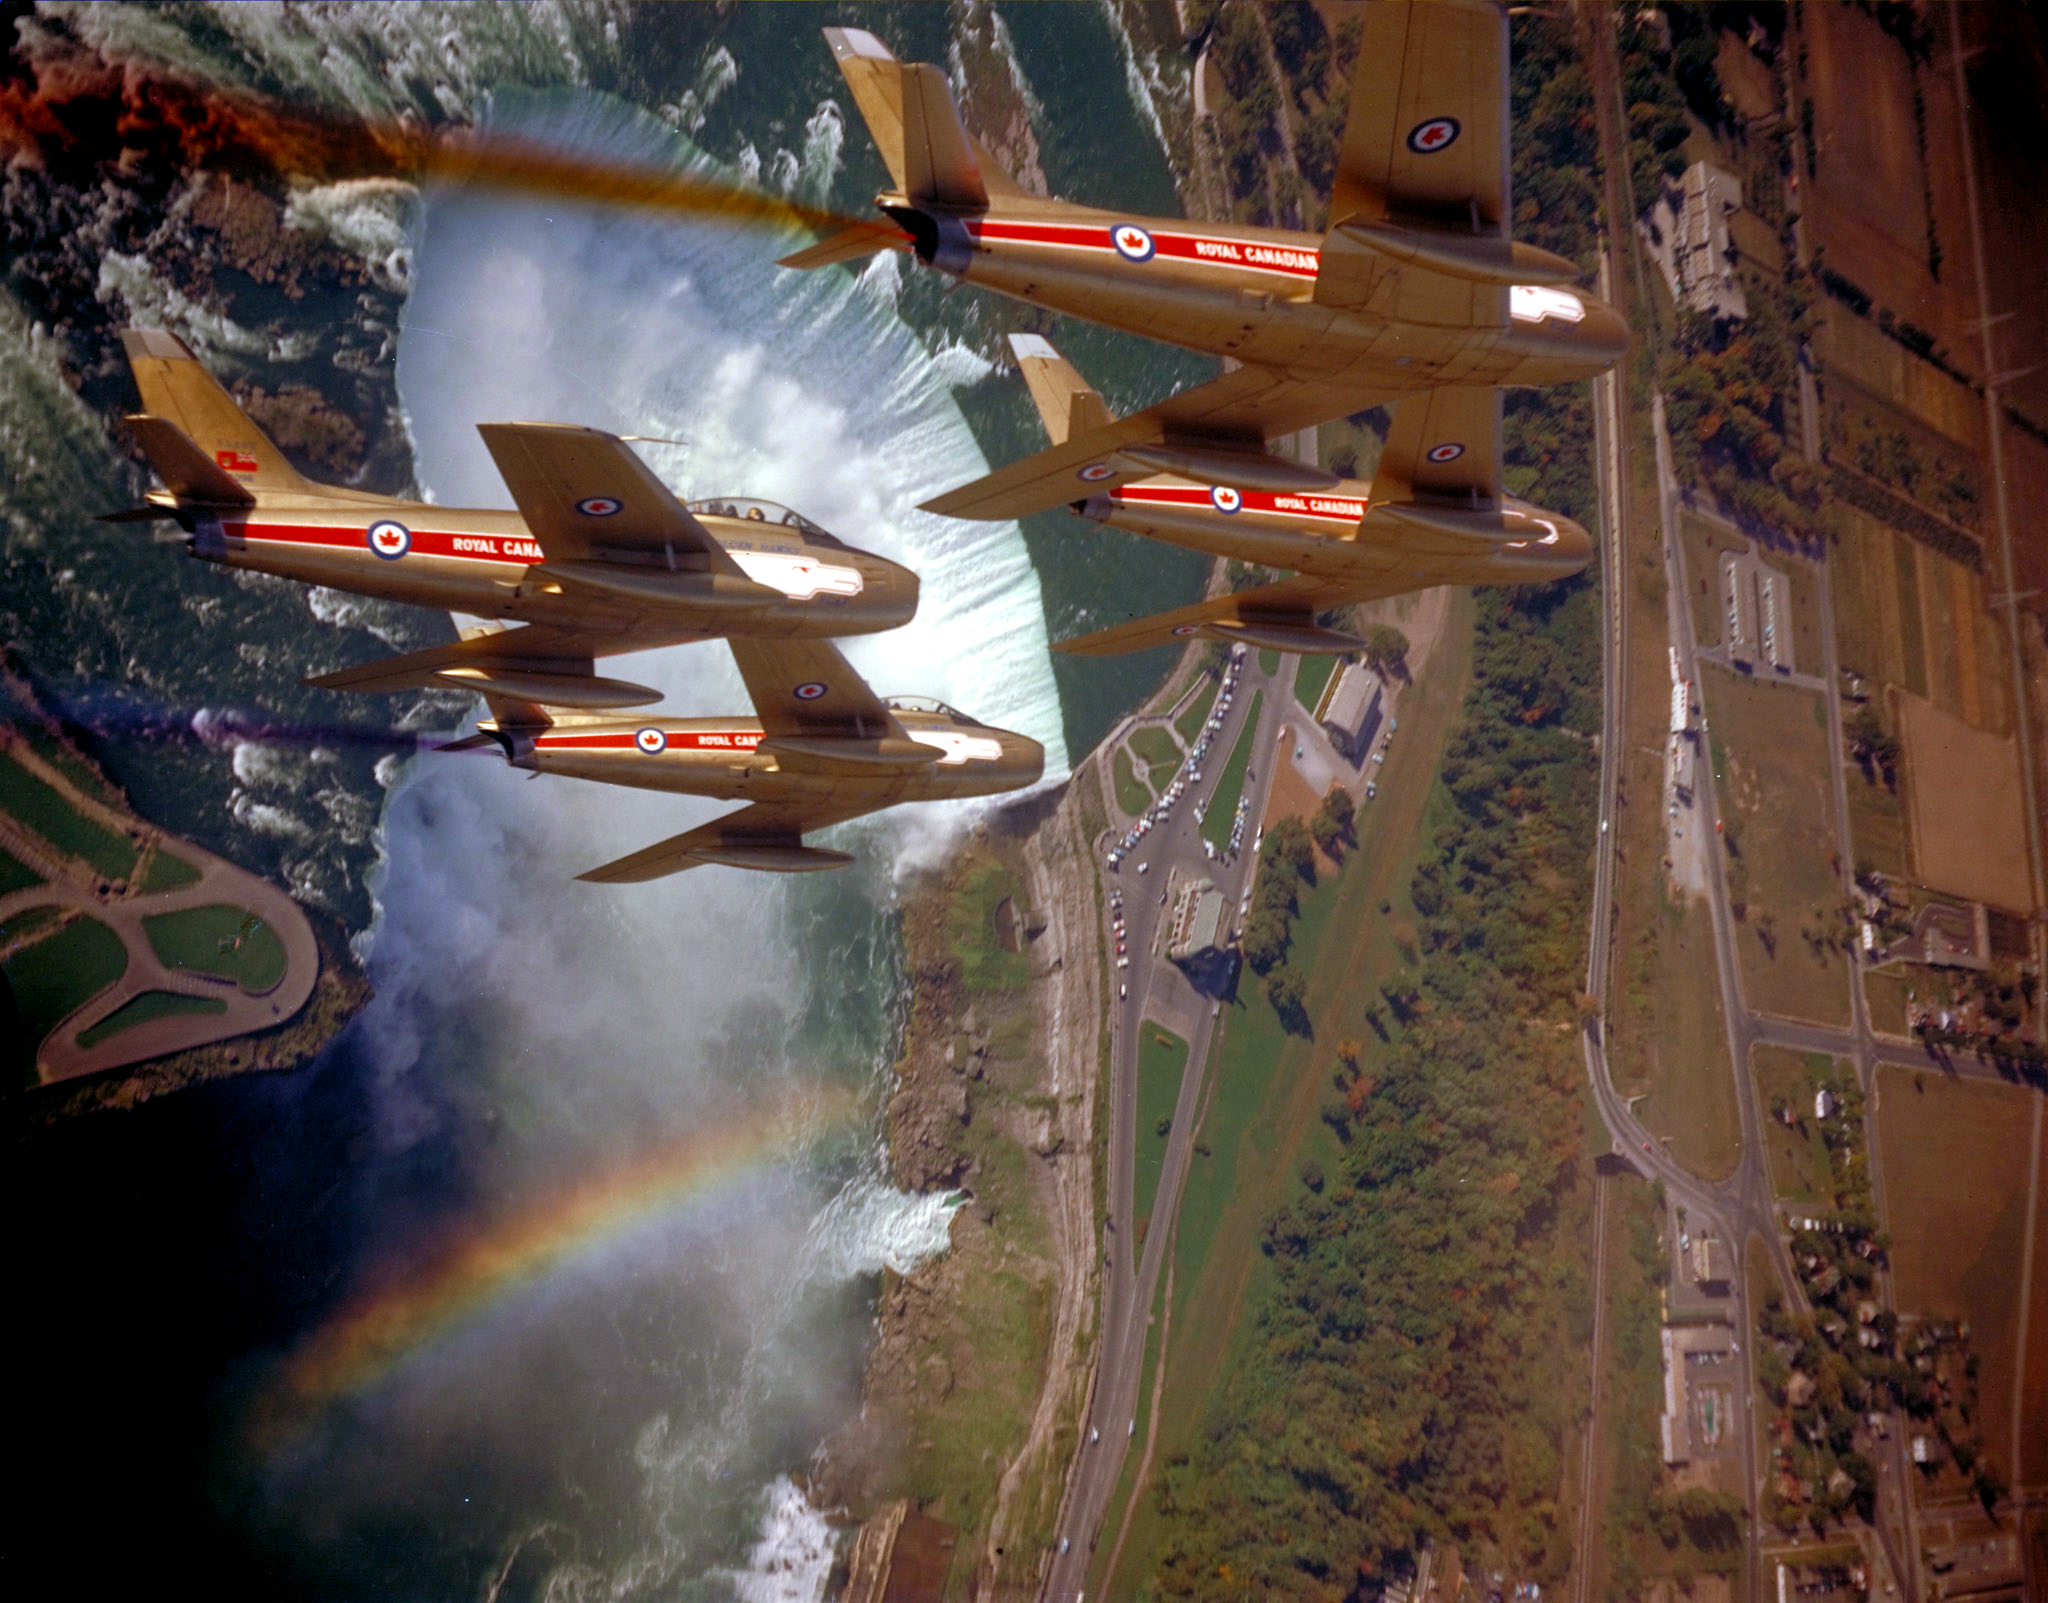 Four small jets, painted in colours of gold and red, fly at a steep angle over Horseshoe Falls at Niagara Falls, Ontario.